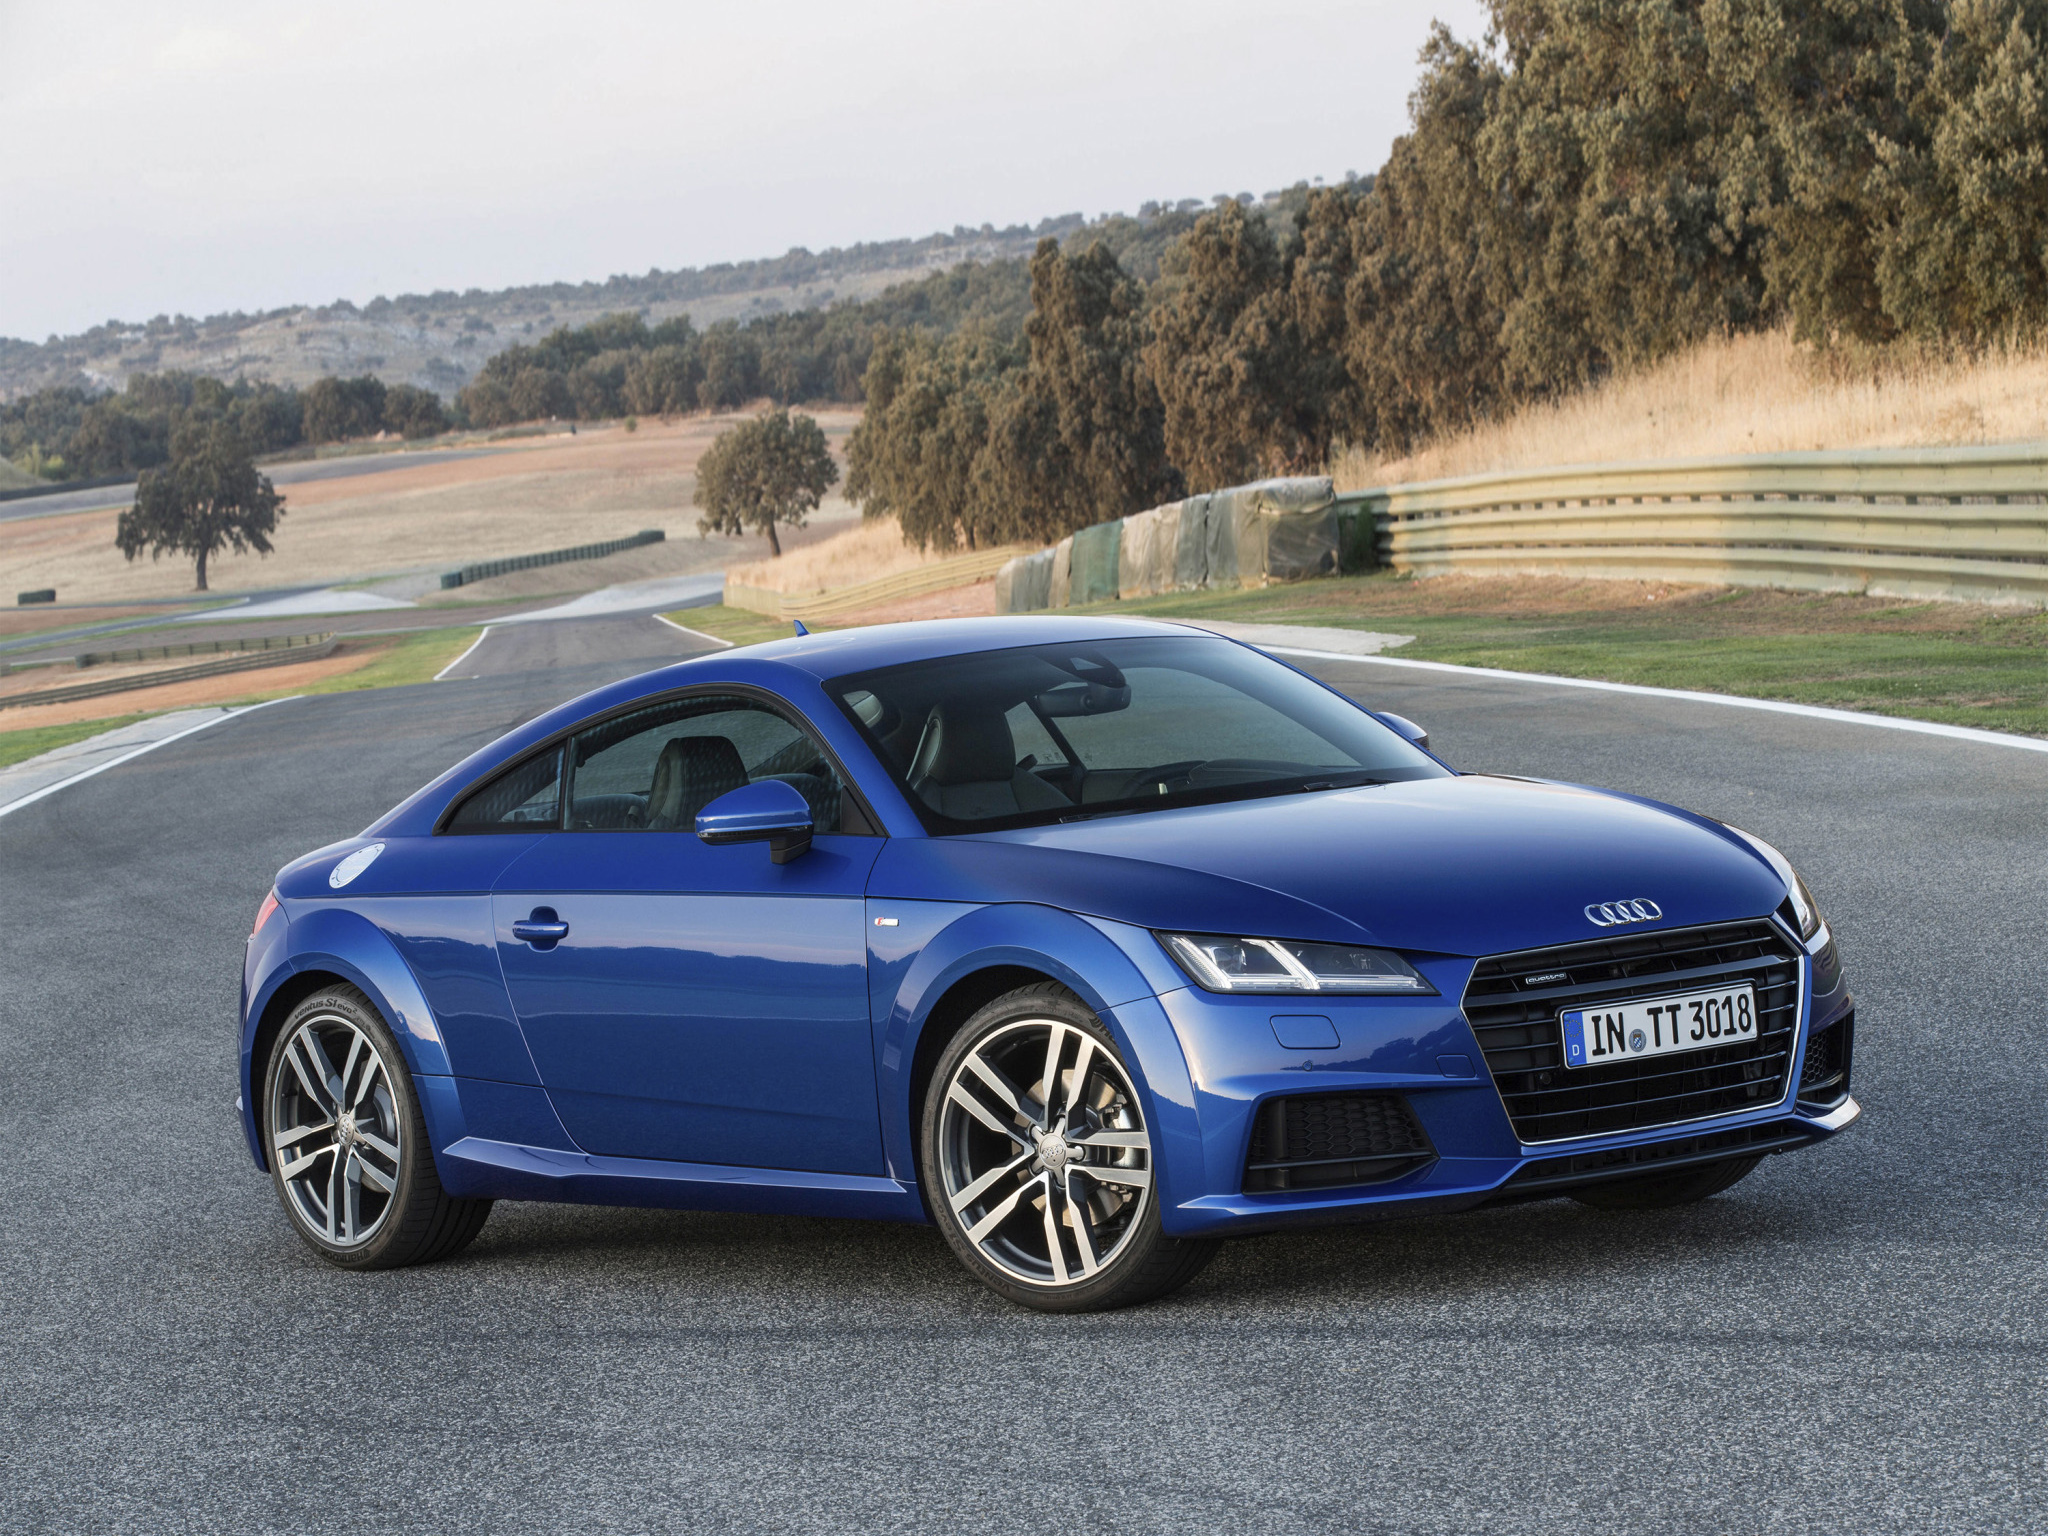 new audi tt tts coupe photos show vegas yellow and tango. Black Bedroom Furniture Sets. Home Design Ideas